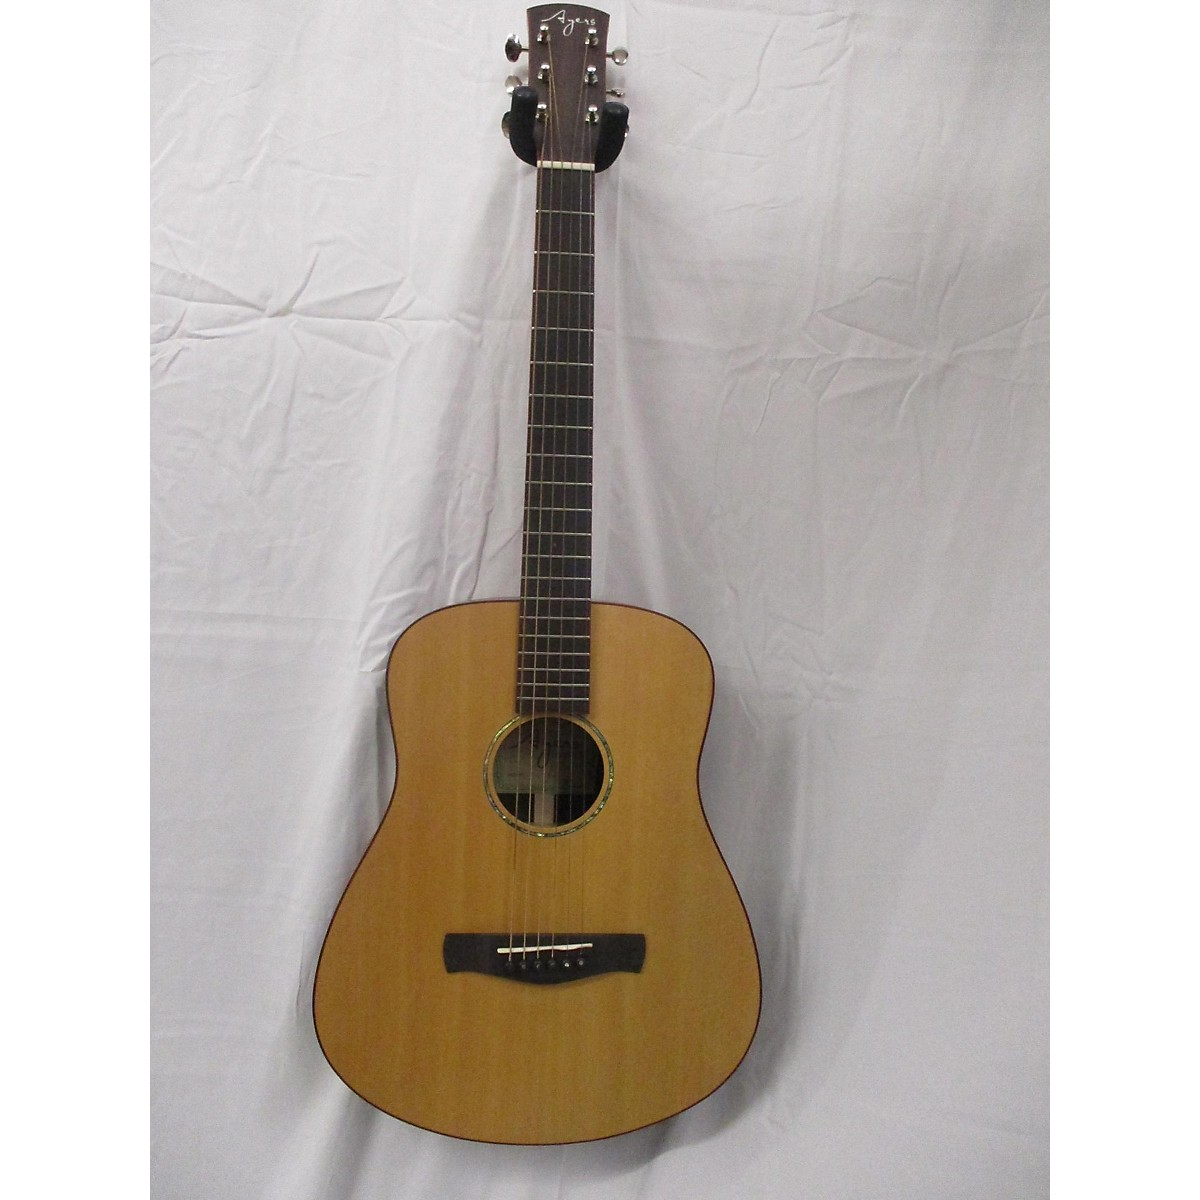 Ayers TD-07 Acoustic Guitar